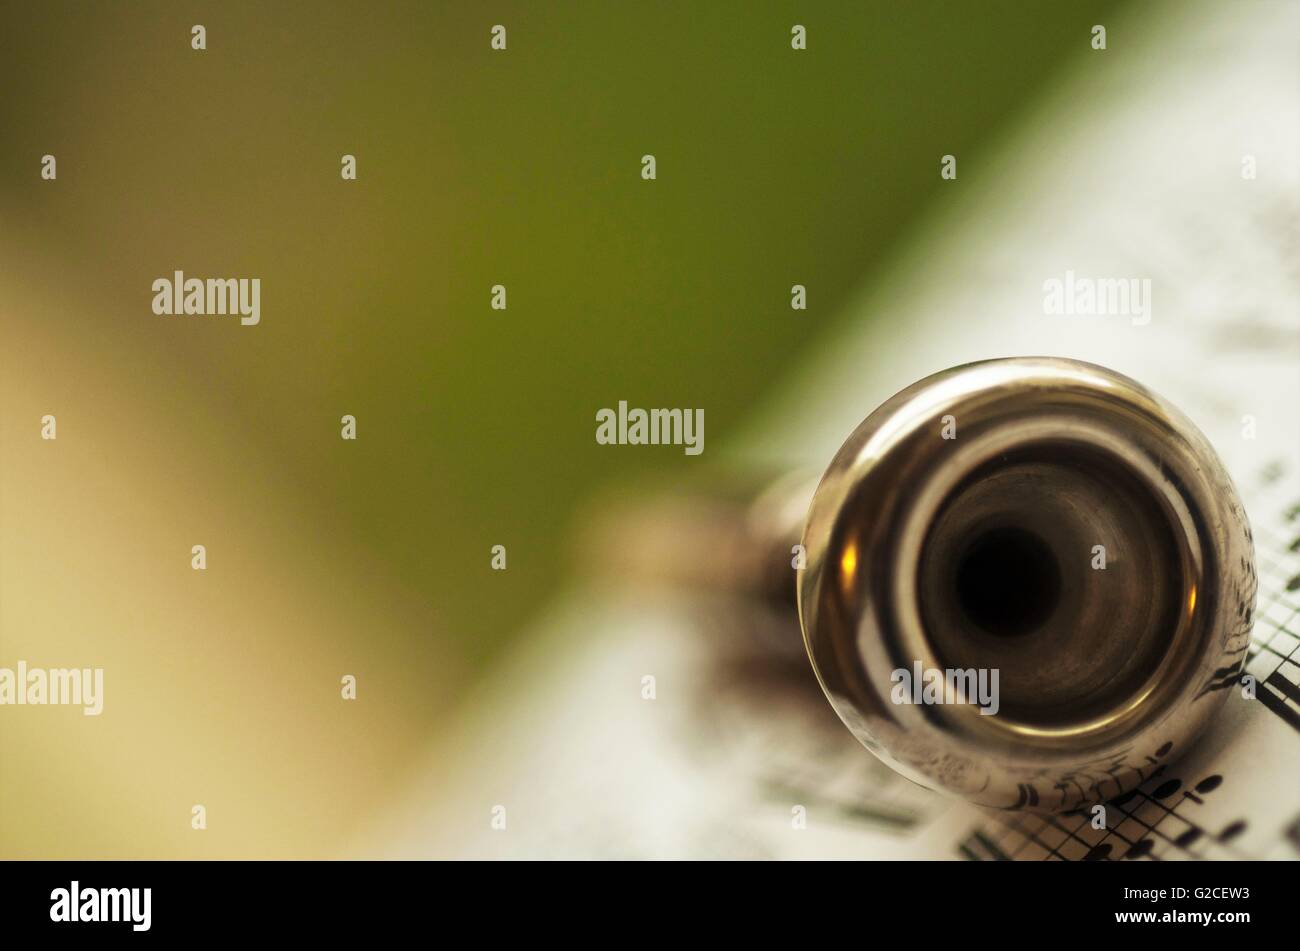 trumpet mouthpiece posed on a book of music sheets - Stock Image